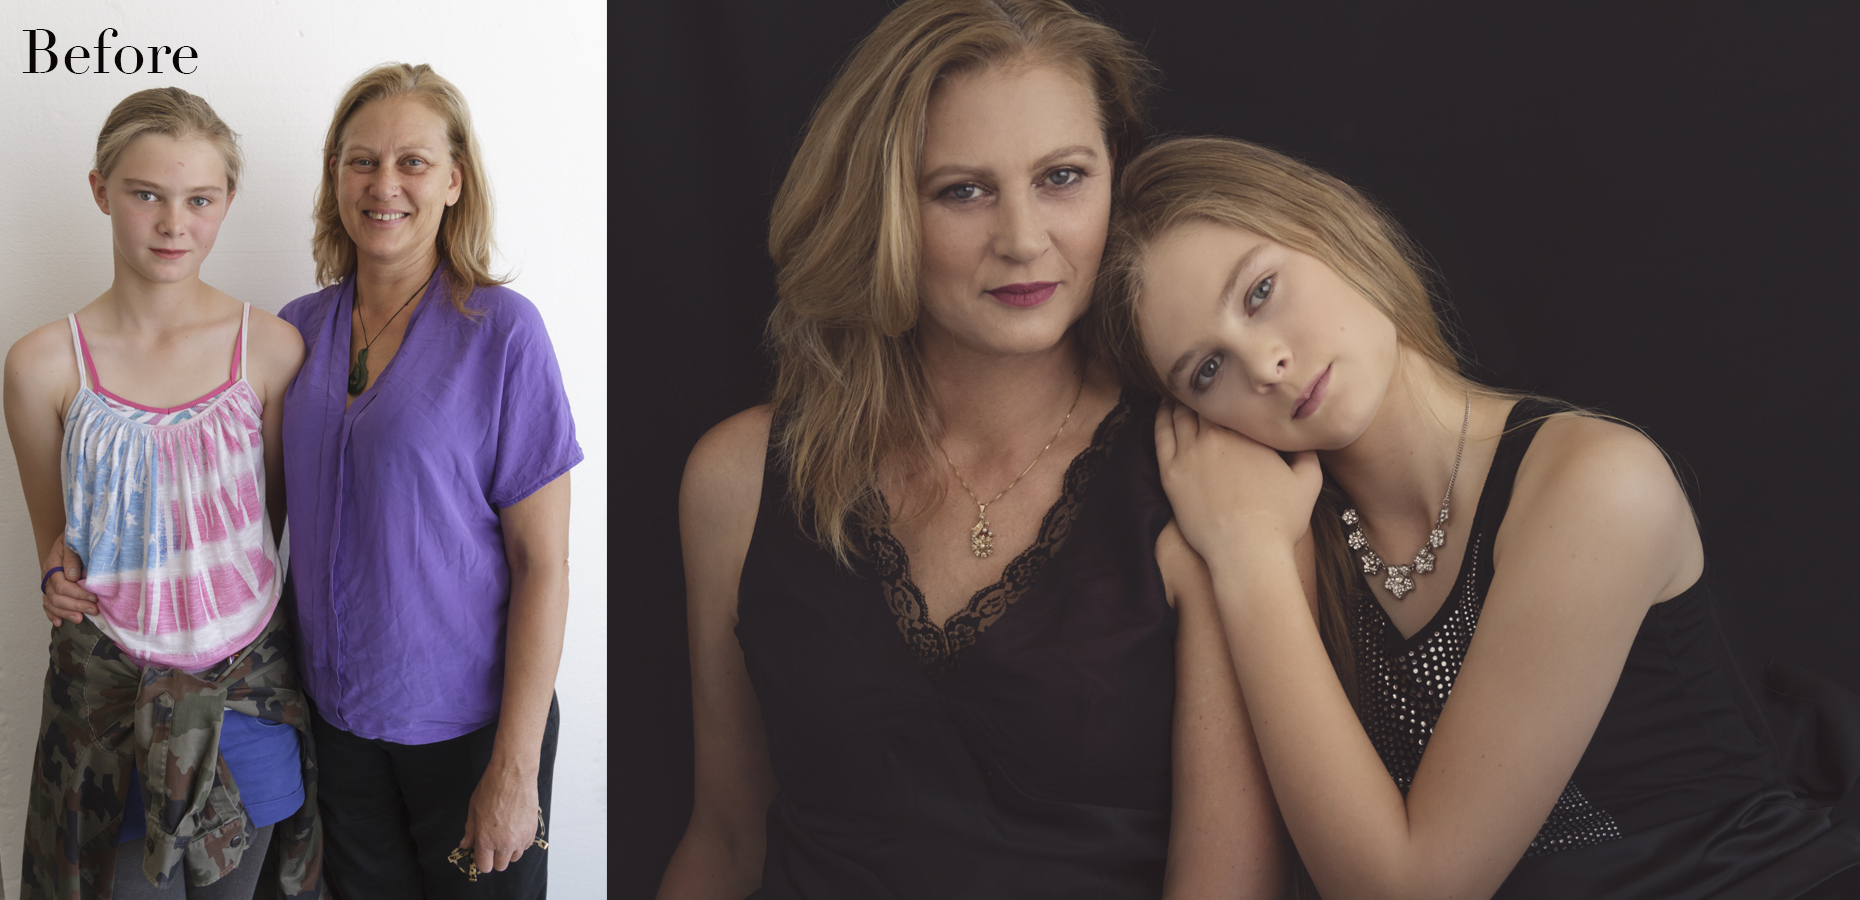 Mother-and-daughter-duo-whanagrei-images-photos-sarahlee